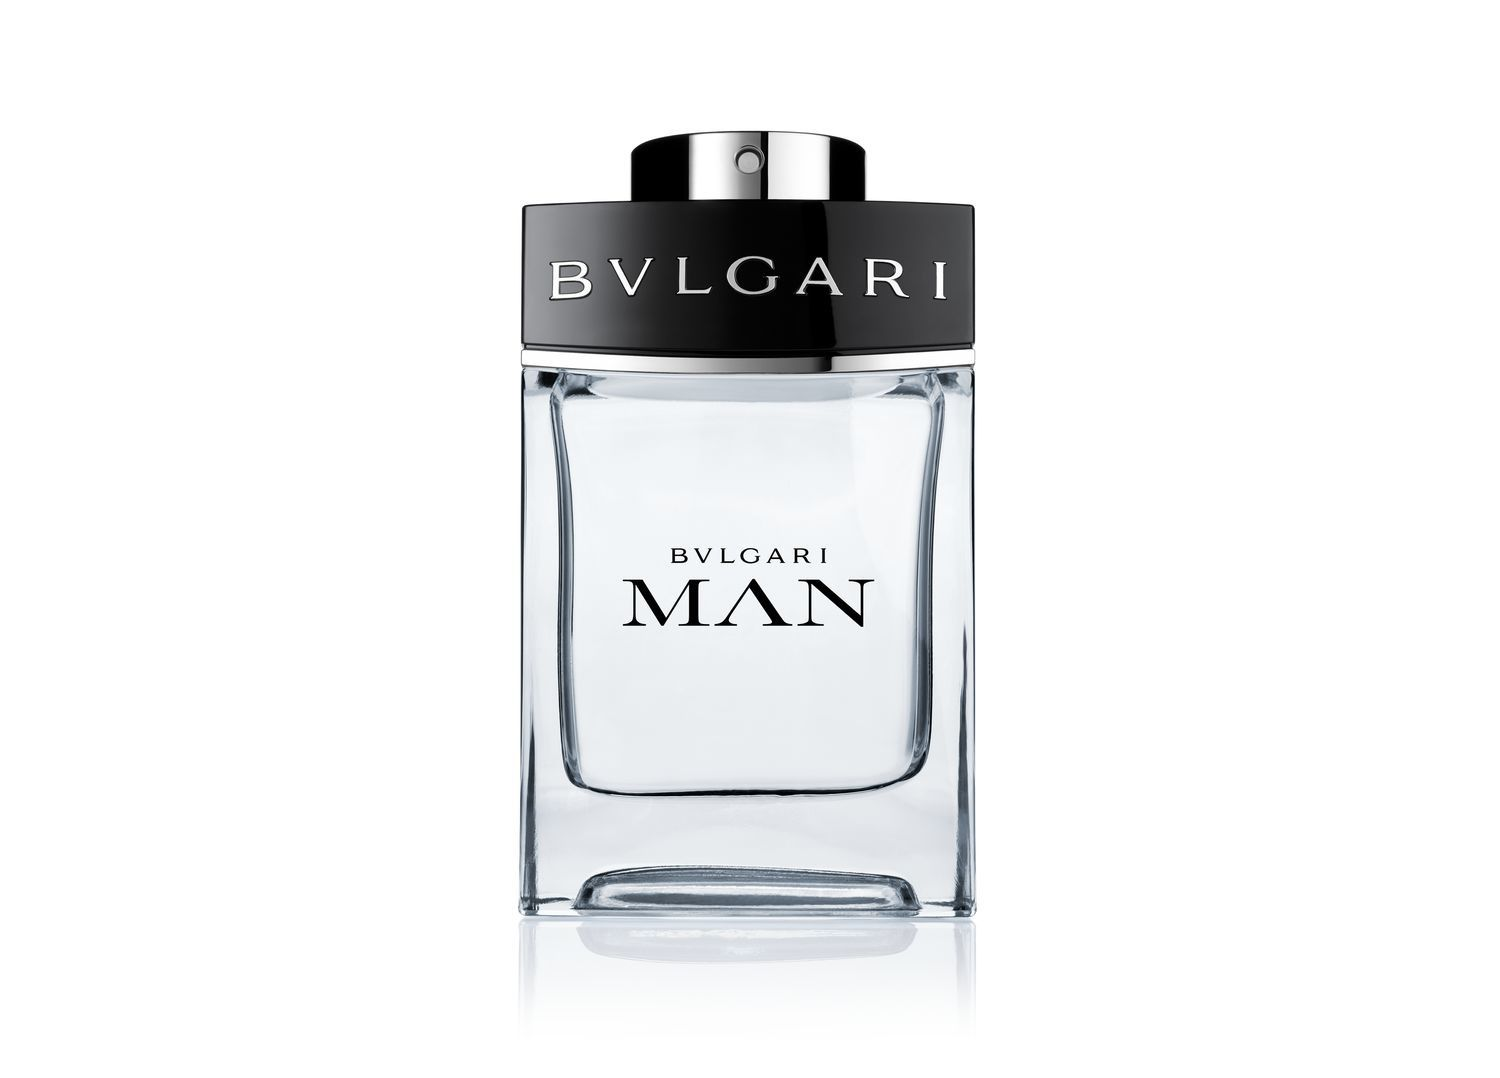 Bulgari Man Eau de Toilette 100ml